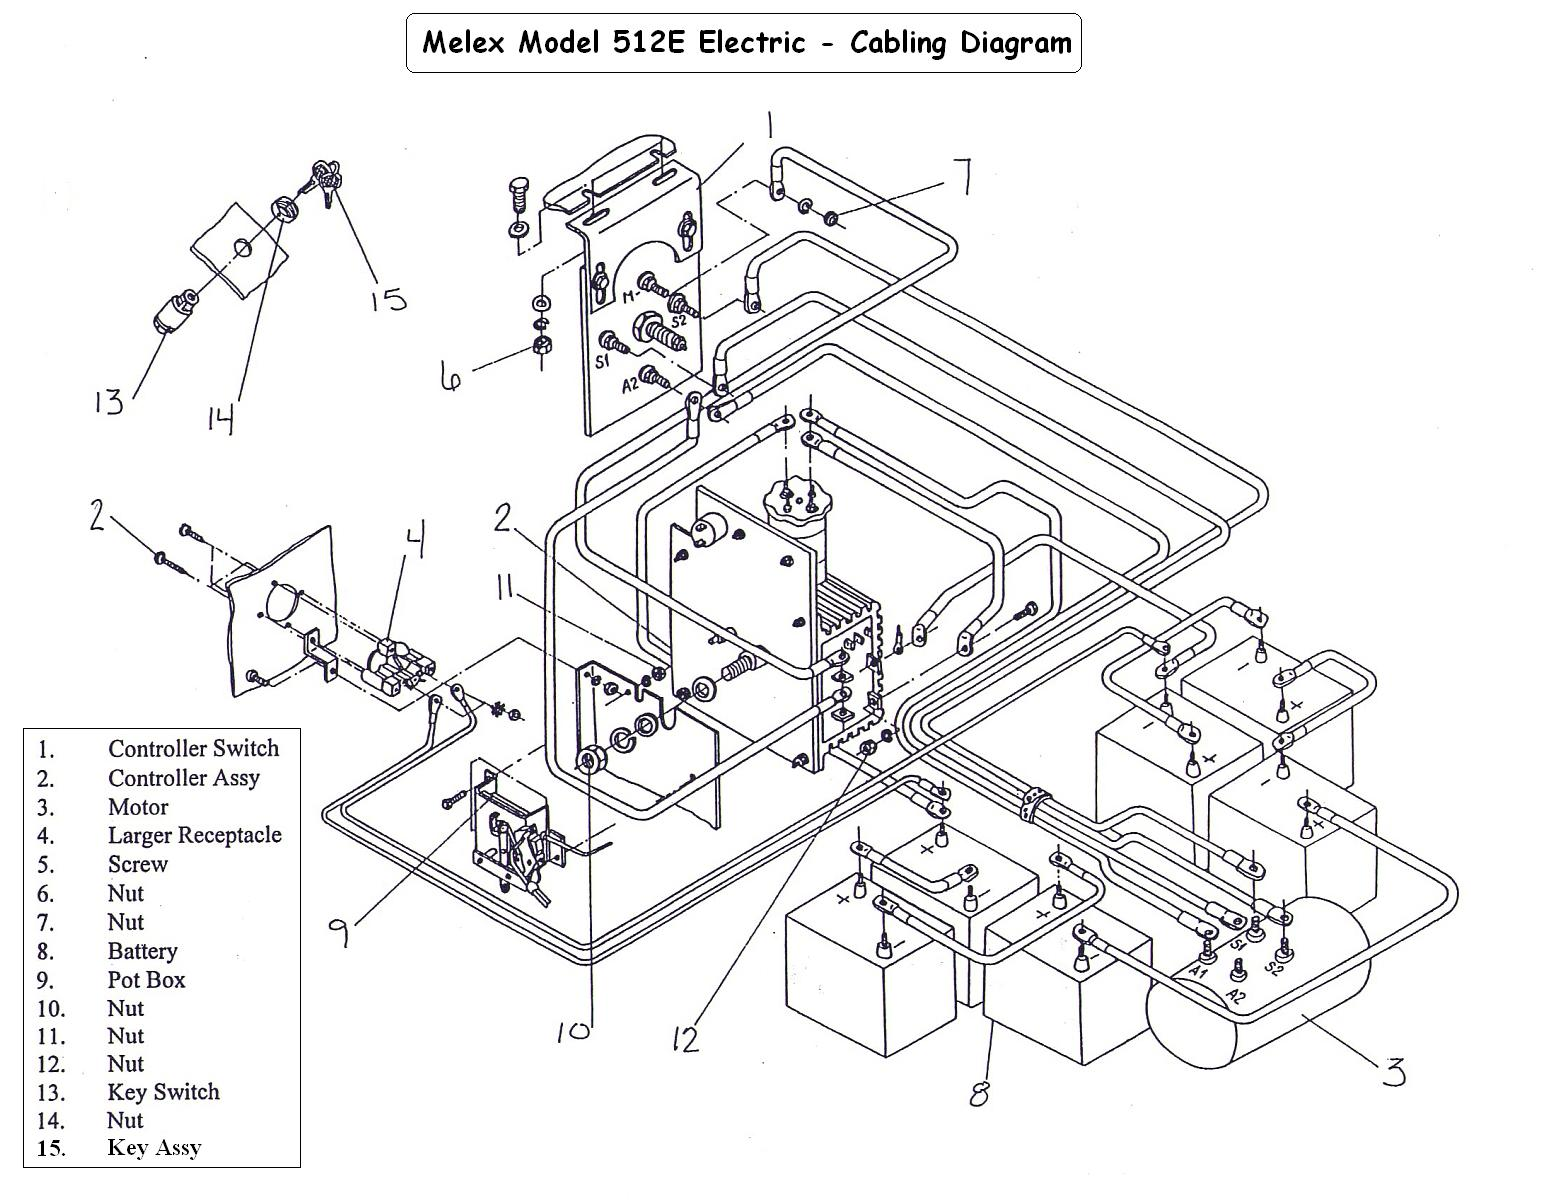 wiring diagram 1989 ezgo golf cart with Vintagegolfcartparts   Gallery Categories Melex Melex Wiring Diagrams Media Melex512e Cabling Diagram on Golf Cart Solenoid Wiring Diagram further Ez Go 20484 Charger Schematic Wiring Diagrams as well 6msfw Ezgo T27893 Need Wiring Diagram 1993 Ezgo Stroke together with 1985 Ez Go Wiring Diagram additionally E Z Go Golf Wiring Diagram.